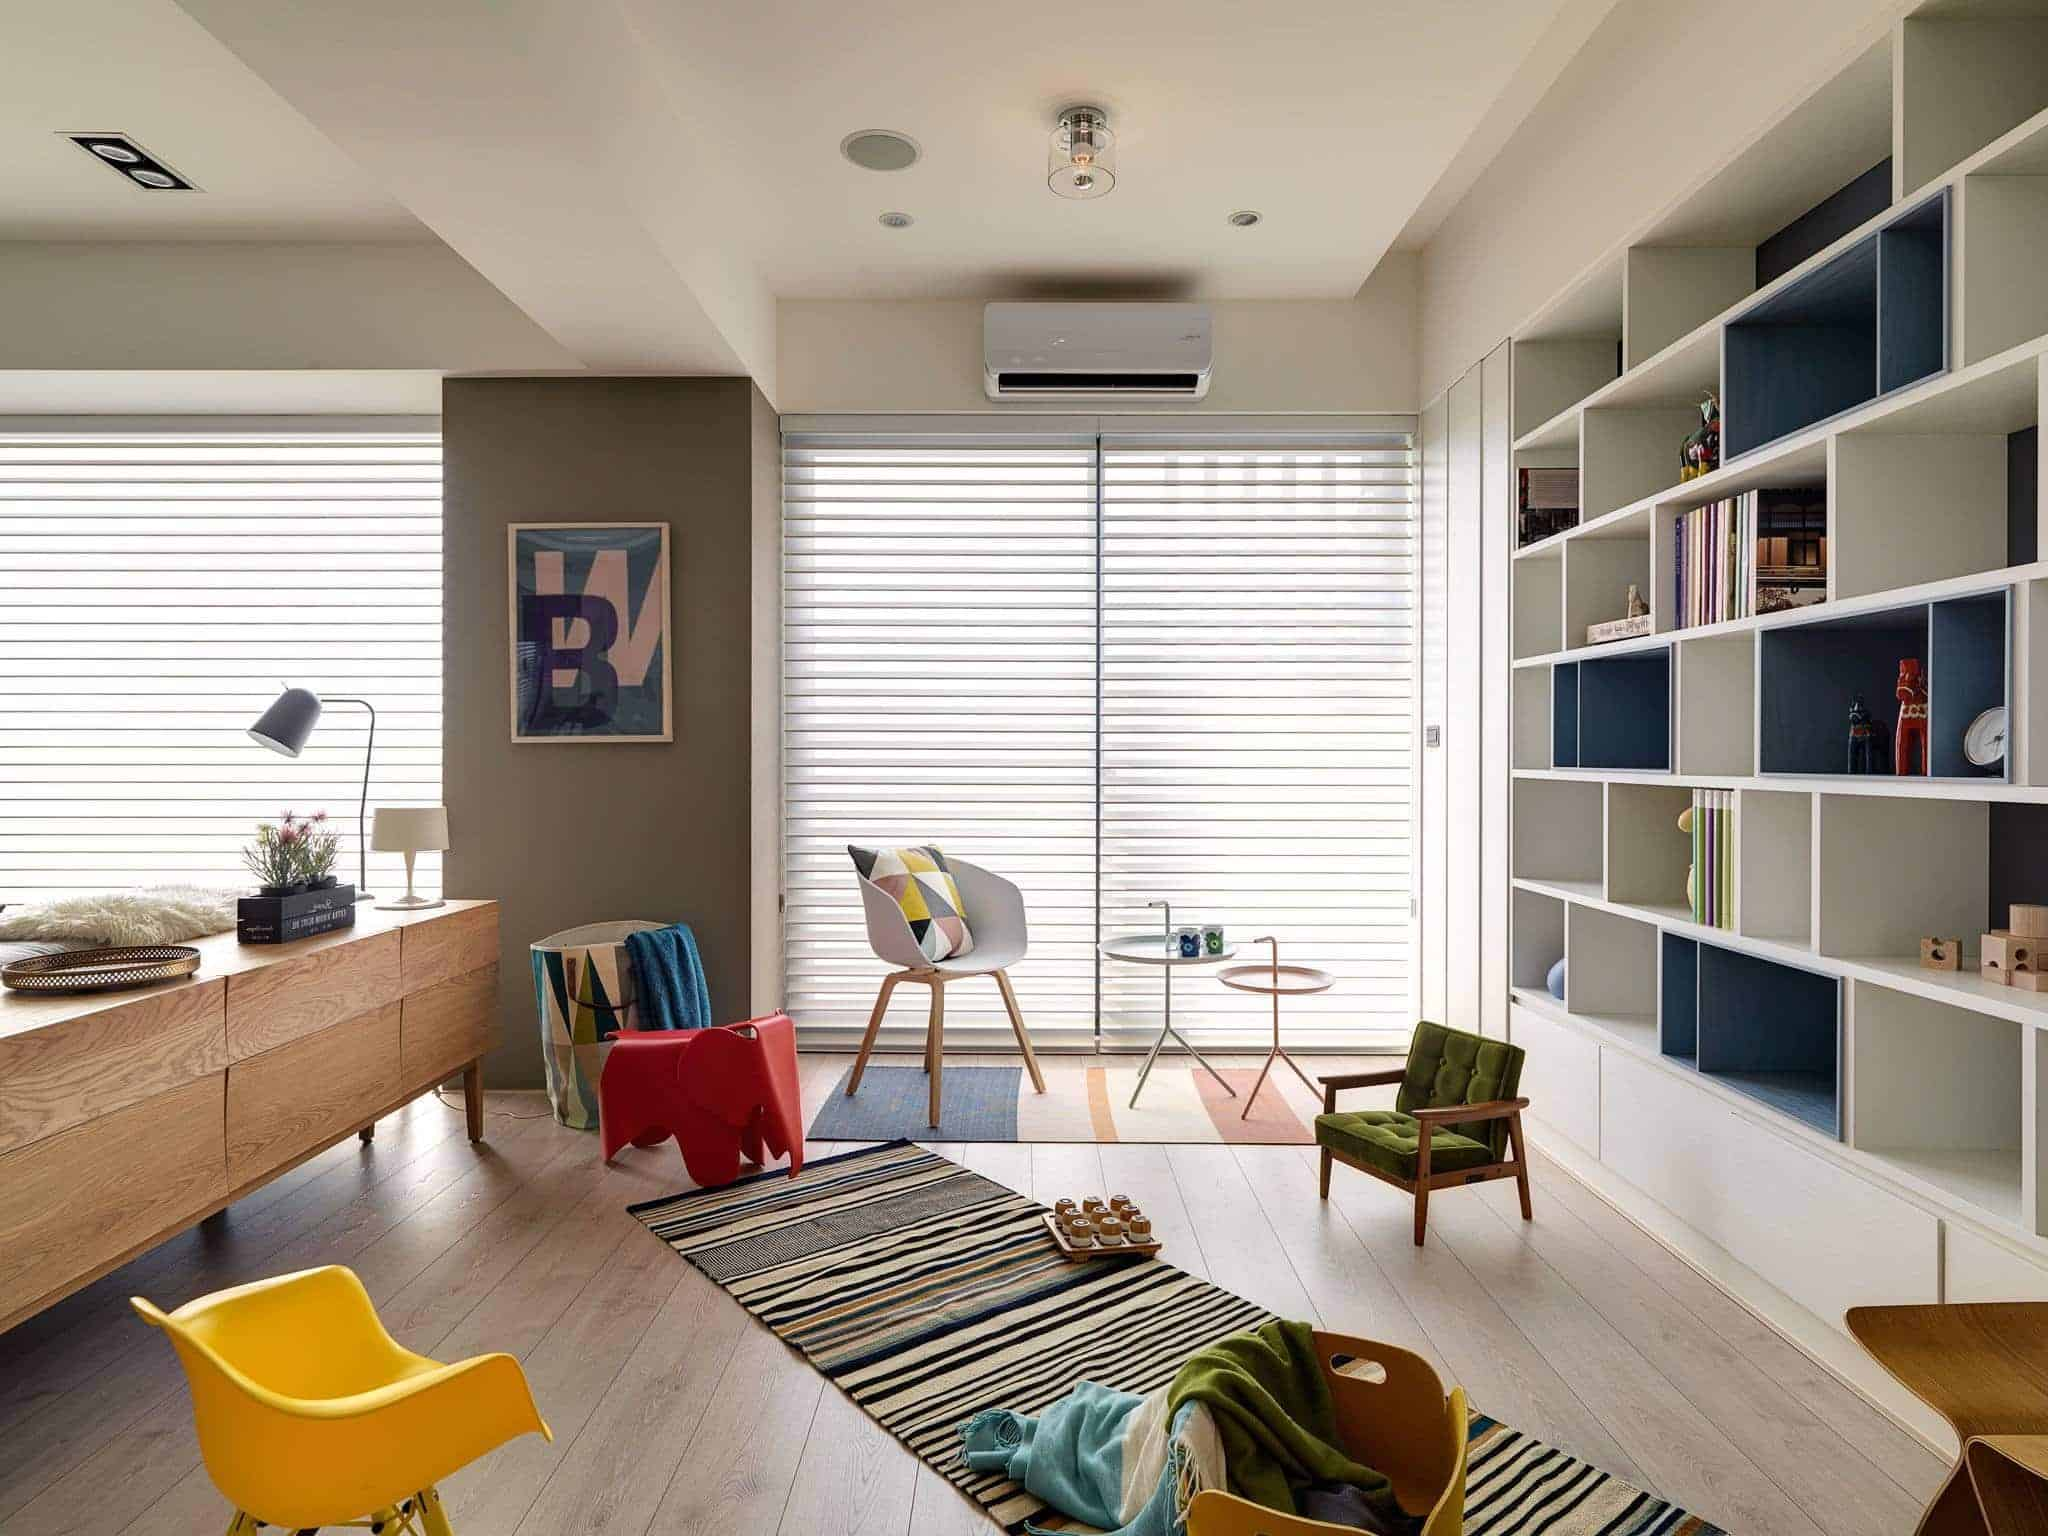 Interior Design 2021 New Solutions Inspirational Ideas Style Trends New Decor Trends